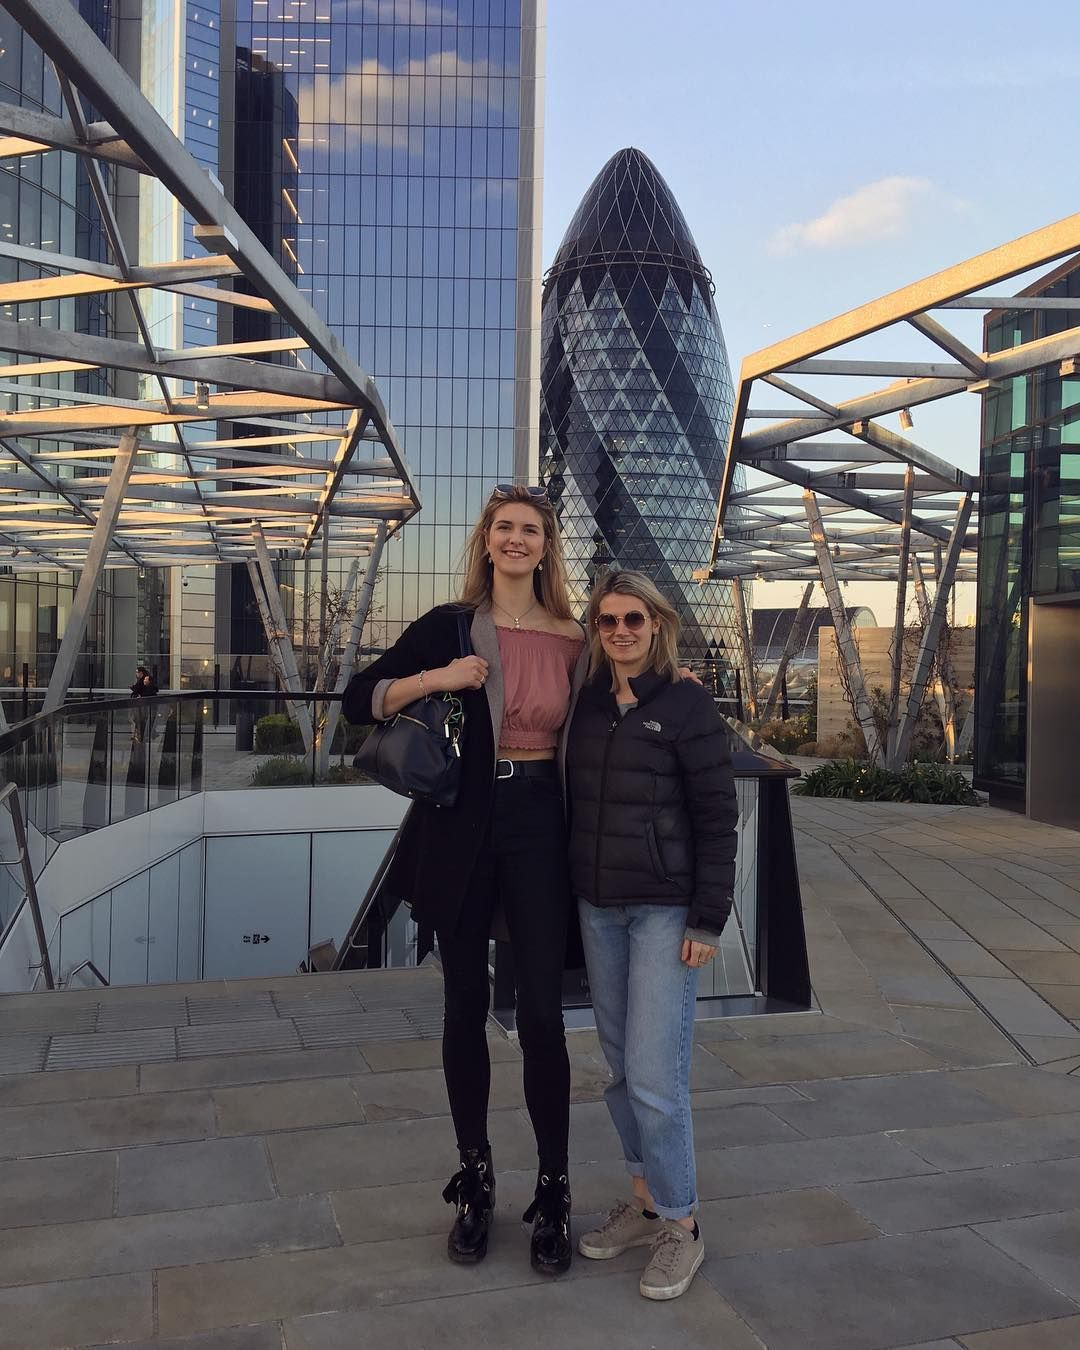 New The 10 Best Home Decor With Pictures Started Off Spring With A Trip To The New Rooftop Garden 120 Fenchurch Street At Rooftop Garden Trip Pictures